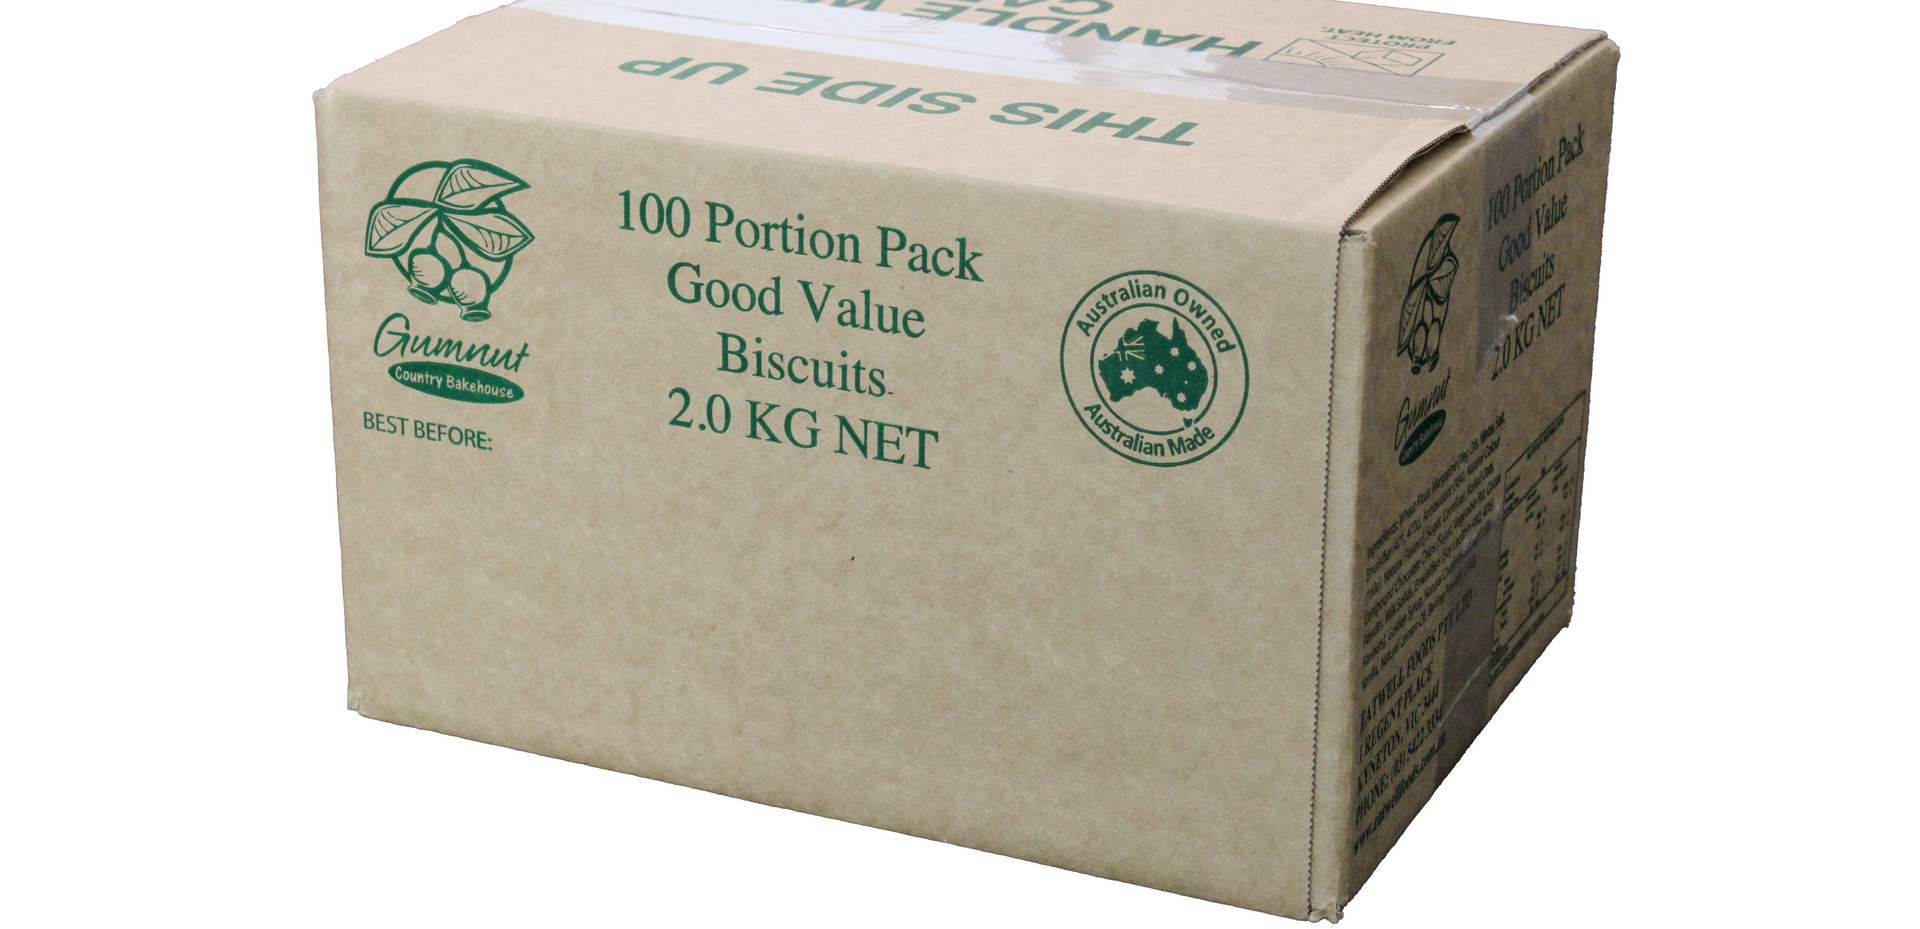 Good Value Carton